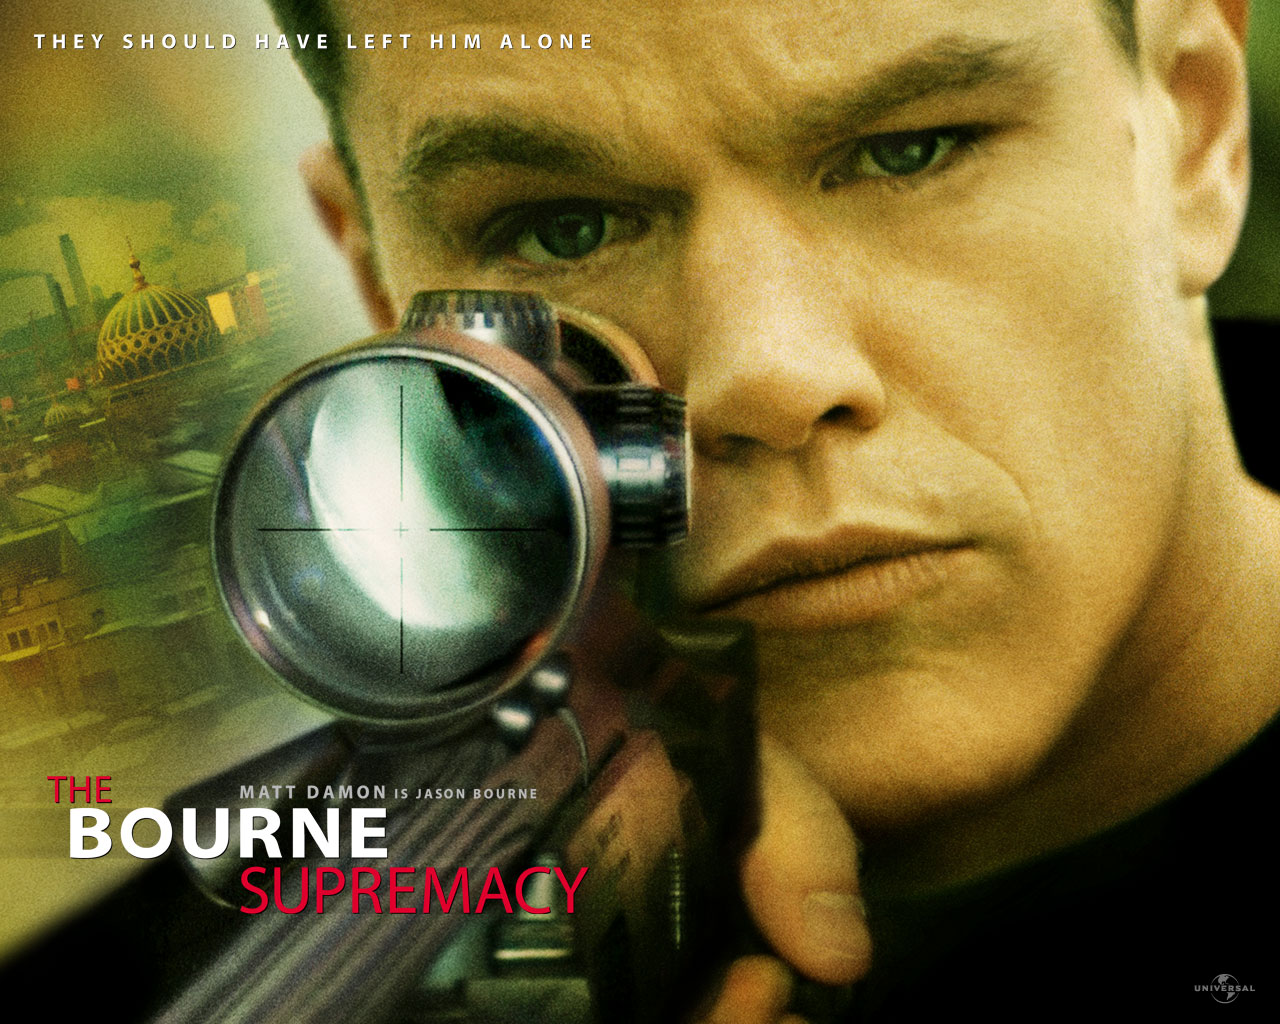 jason bourne Buy jason bourne: read 2058 movies & tv reviews - amazoncom.